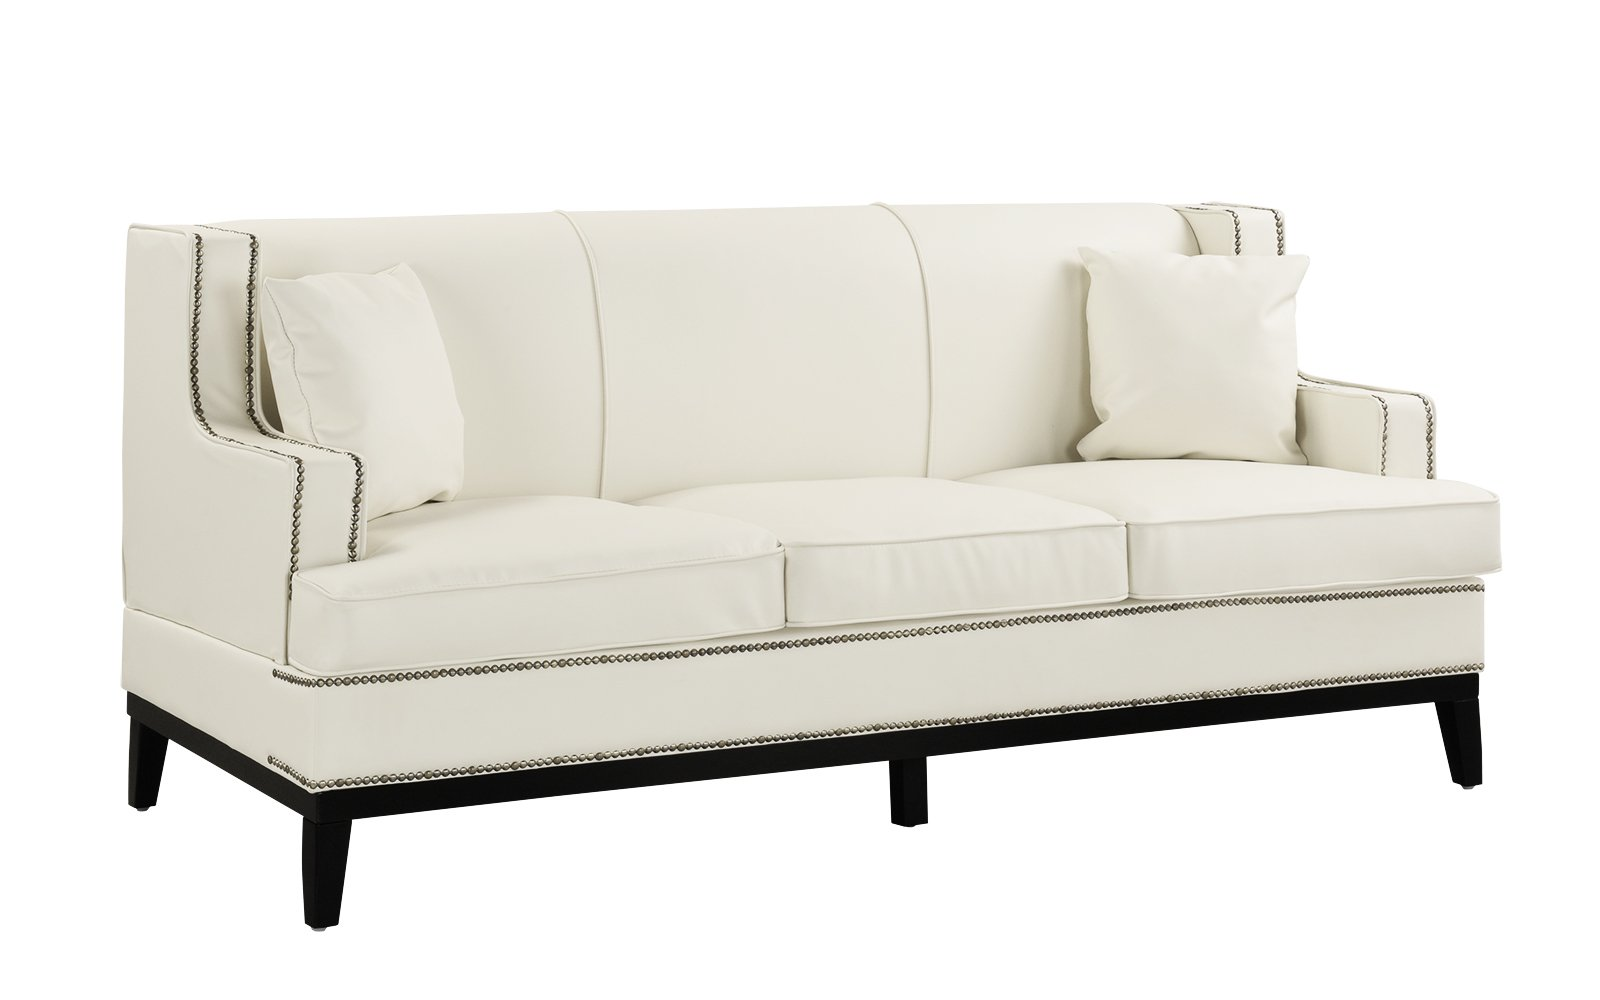 Details About White Contemporary Modern Bonded Leather Sofa With Nailhead  Trim Wooden Frame